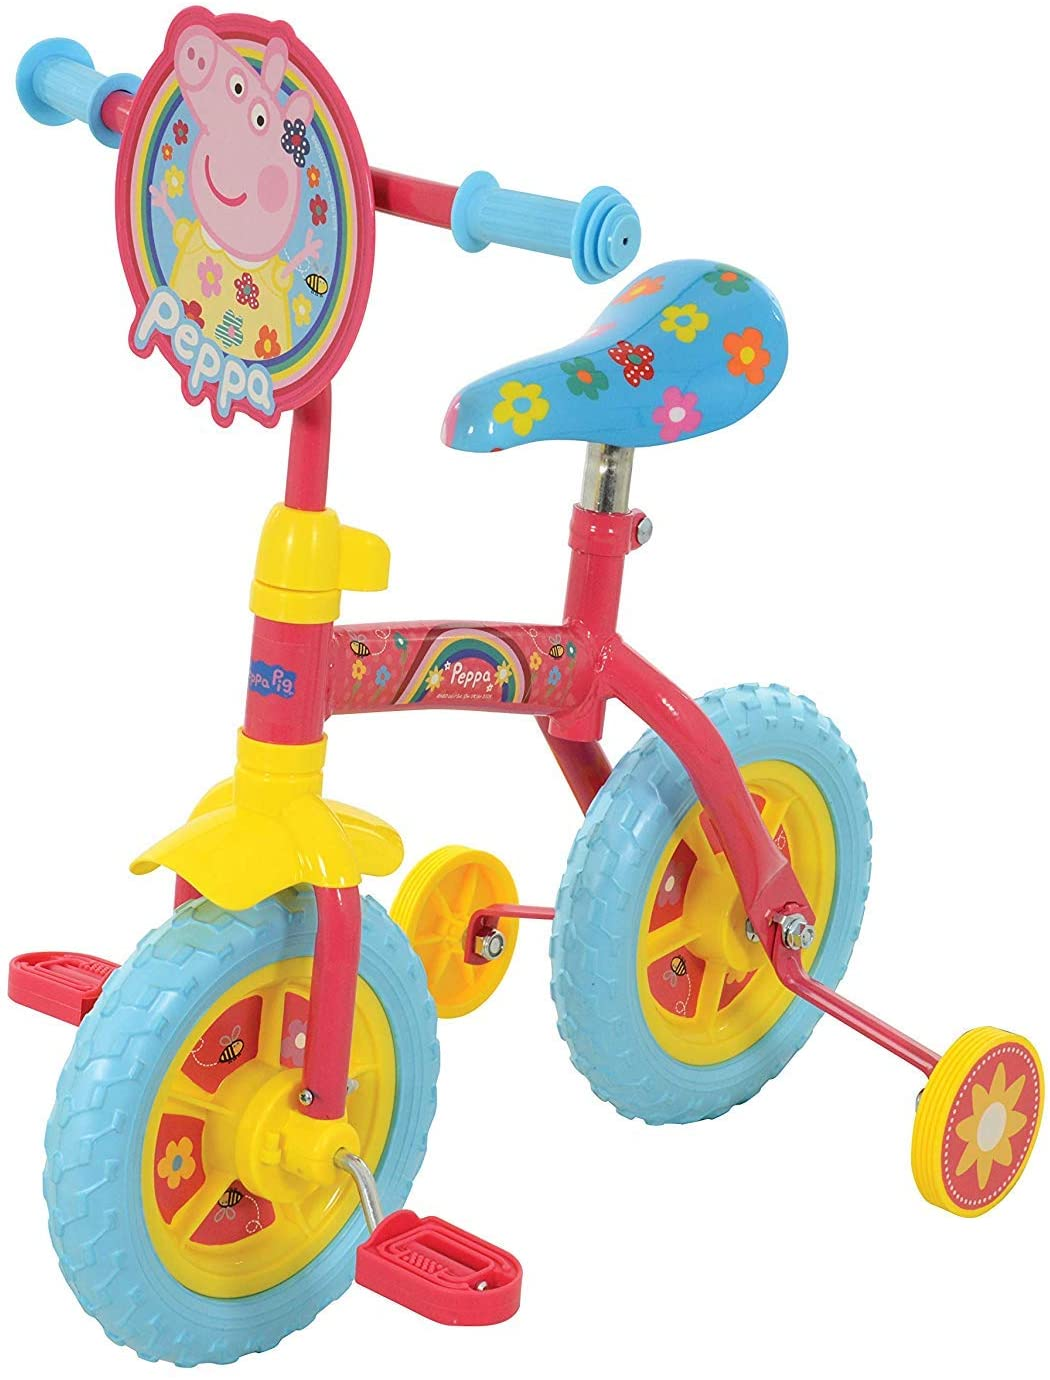 2-in-1 2-Inch Bike Peppa Pig